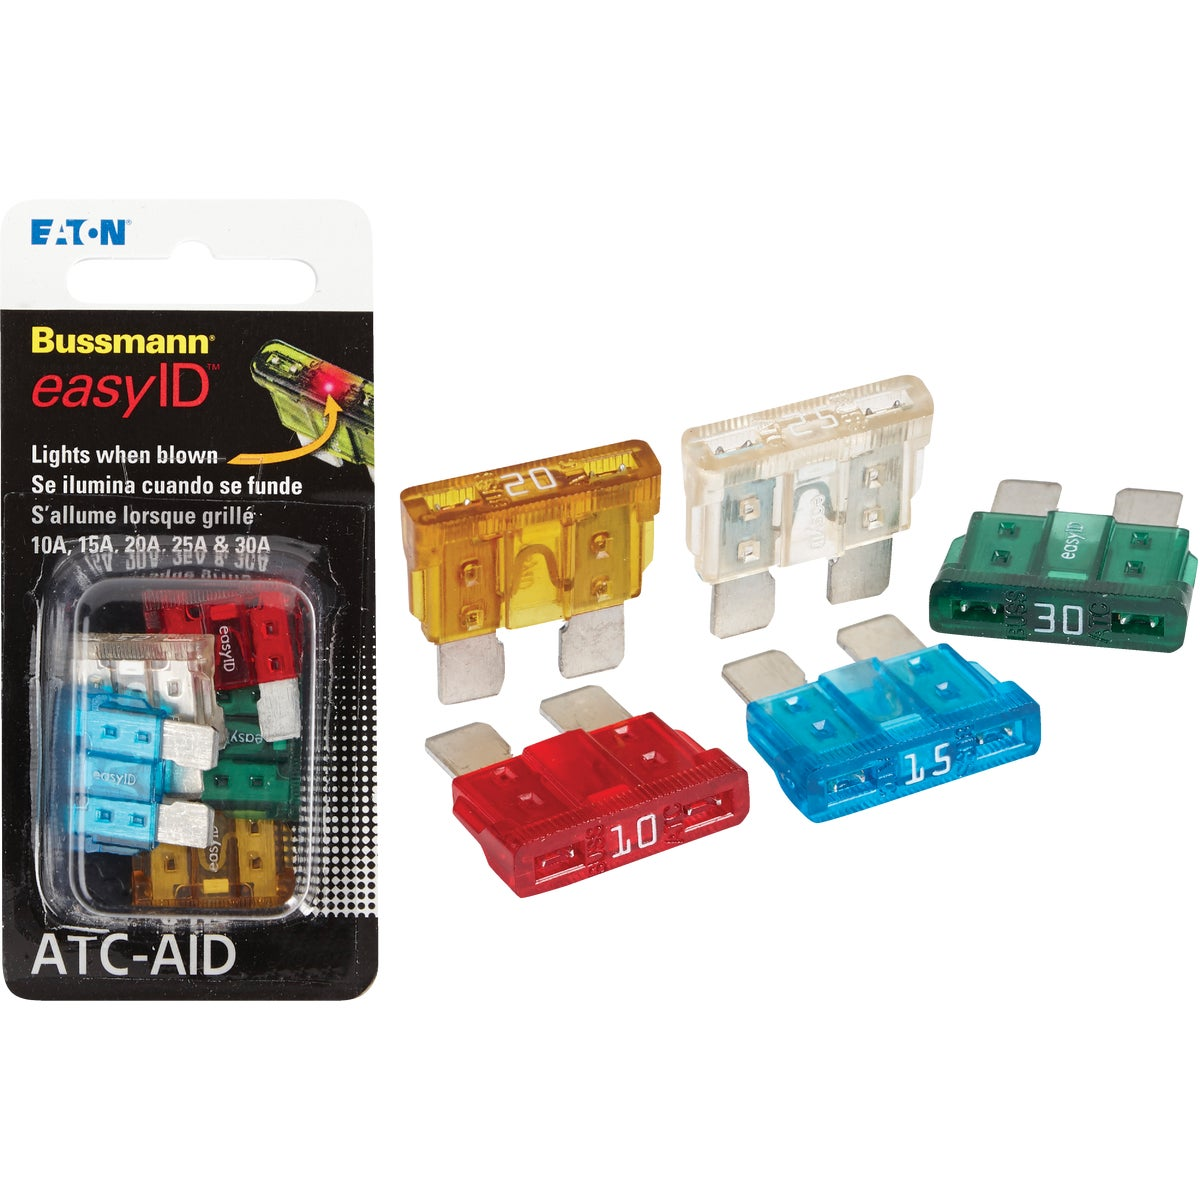 EASYID ASSORTMENT FUSE - BP/ATC-AID by Bussmann Cooper